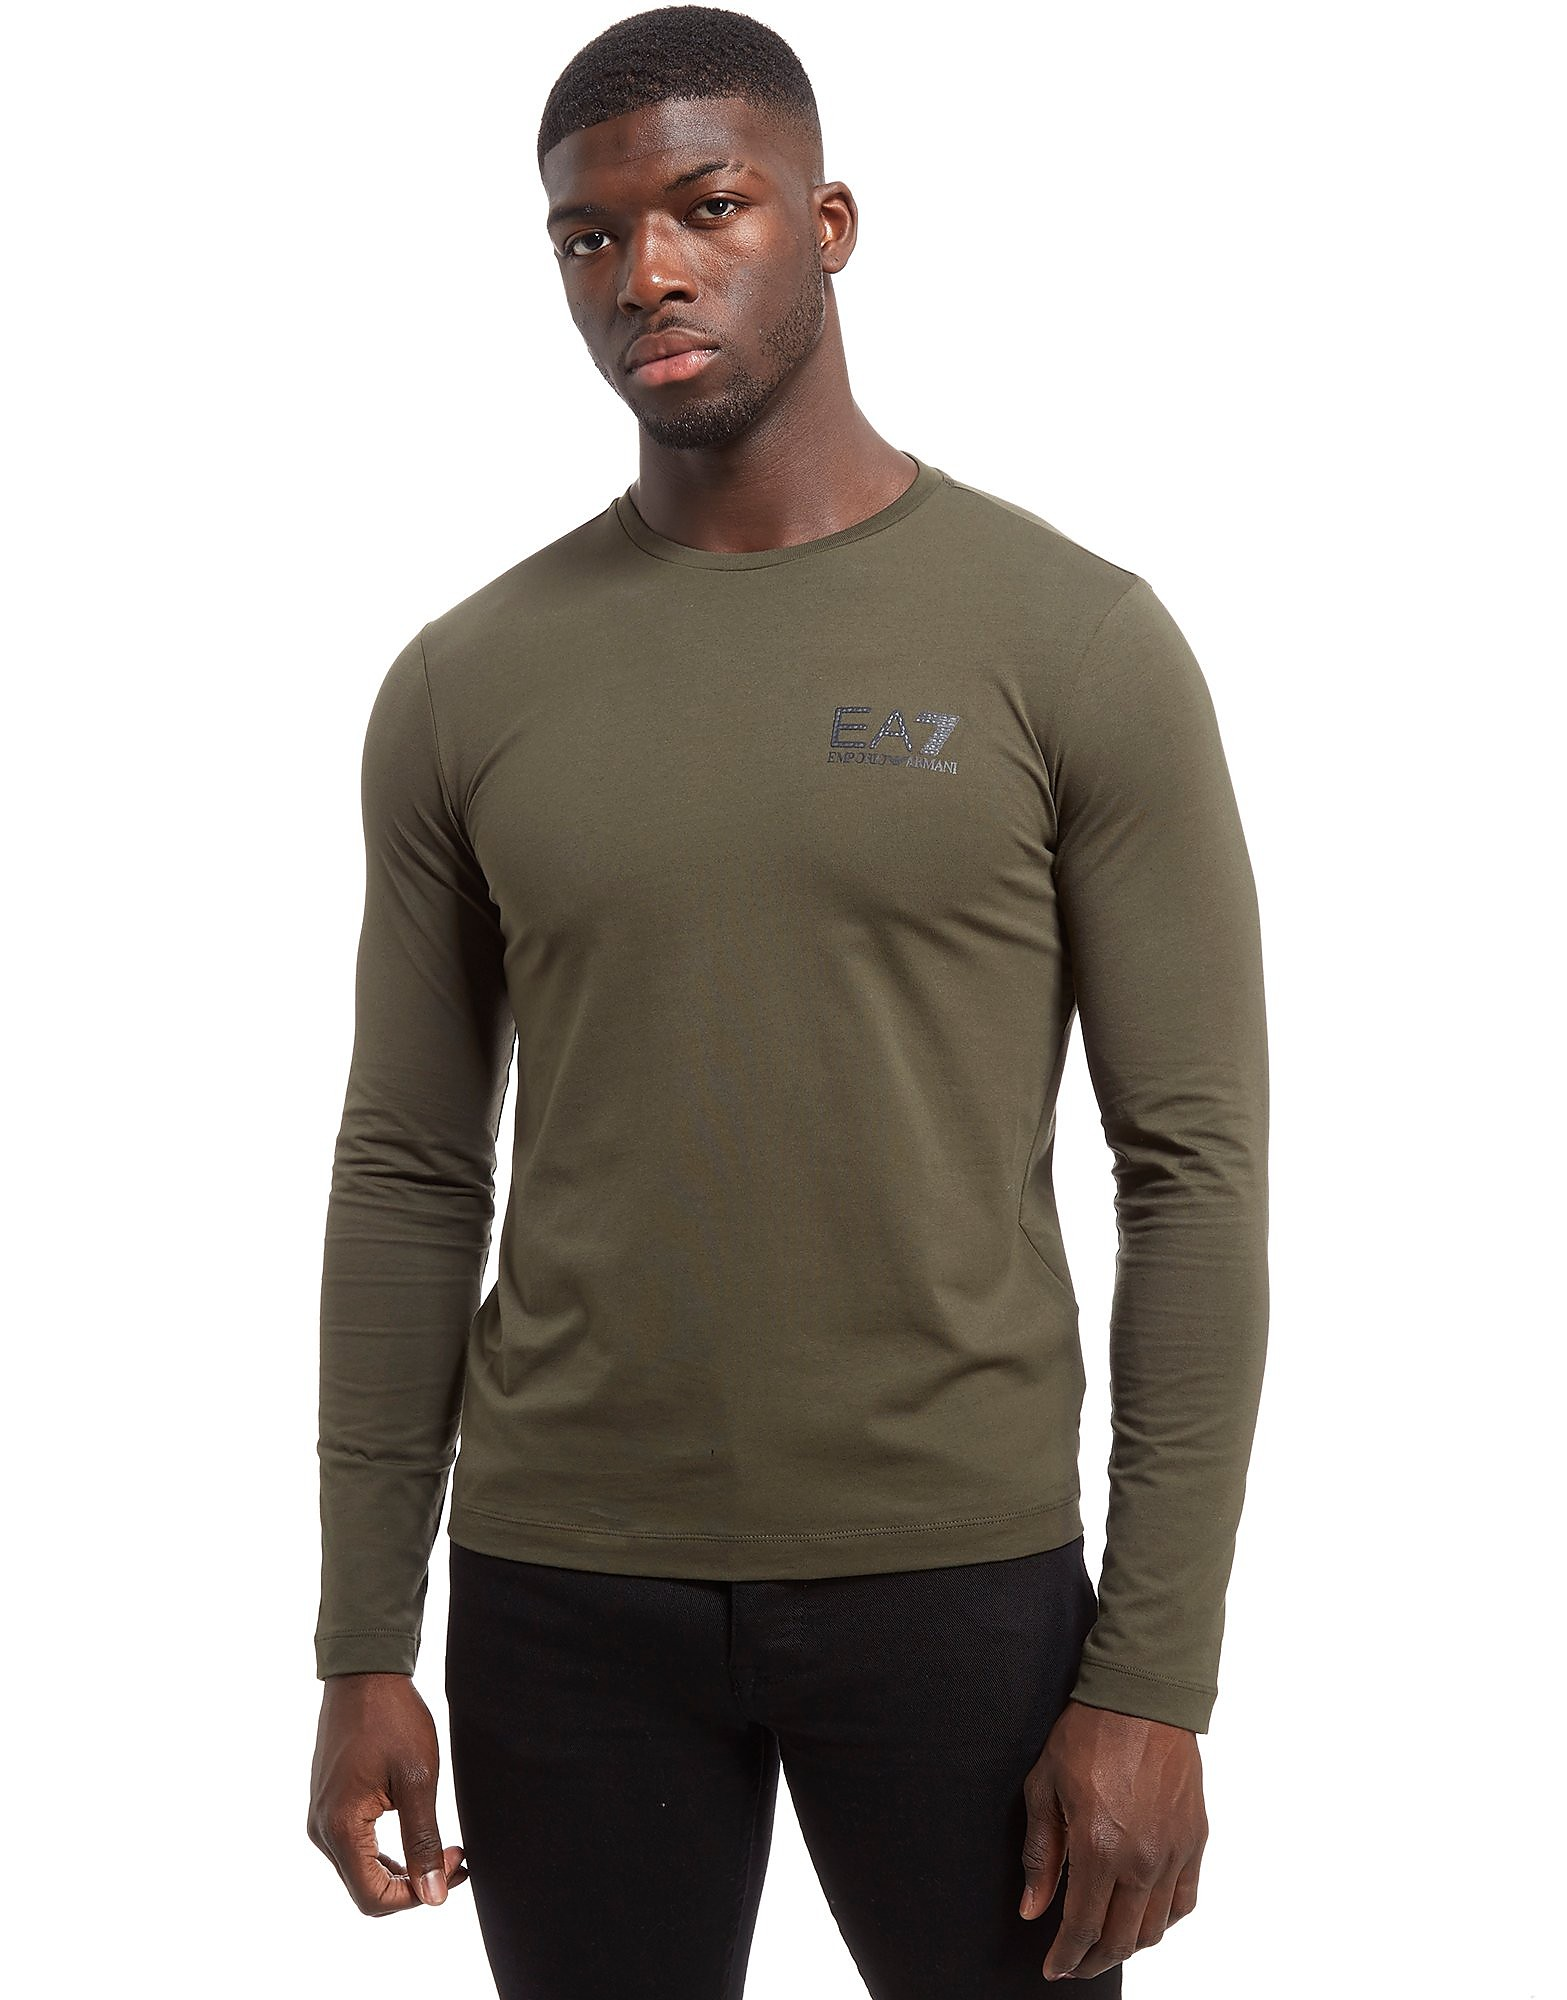 Emporio Armani EA7 Carbon Back Print Long Sleeve T-Shirt